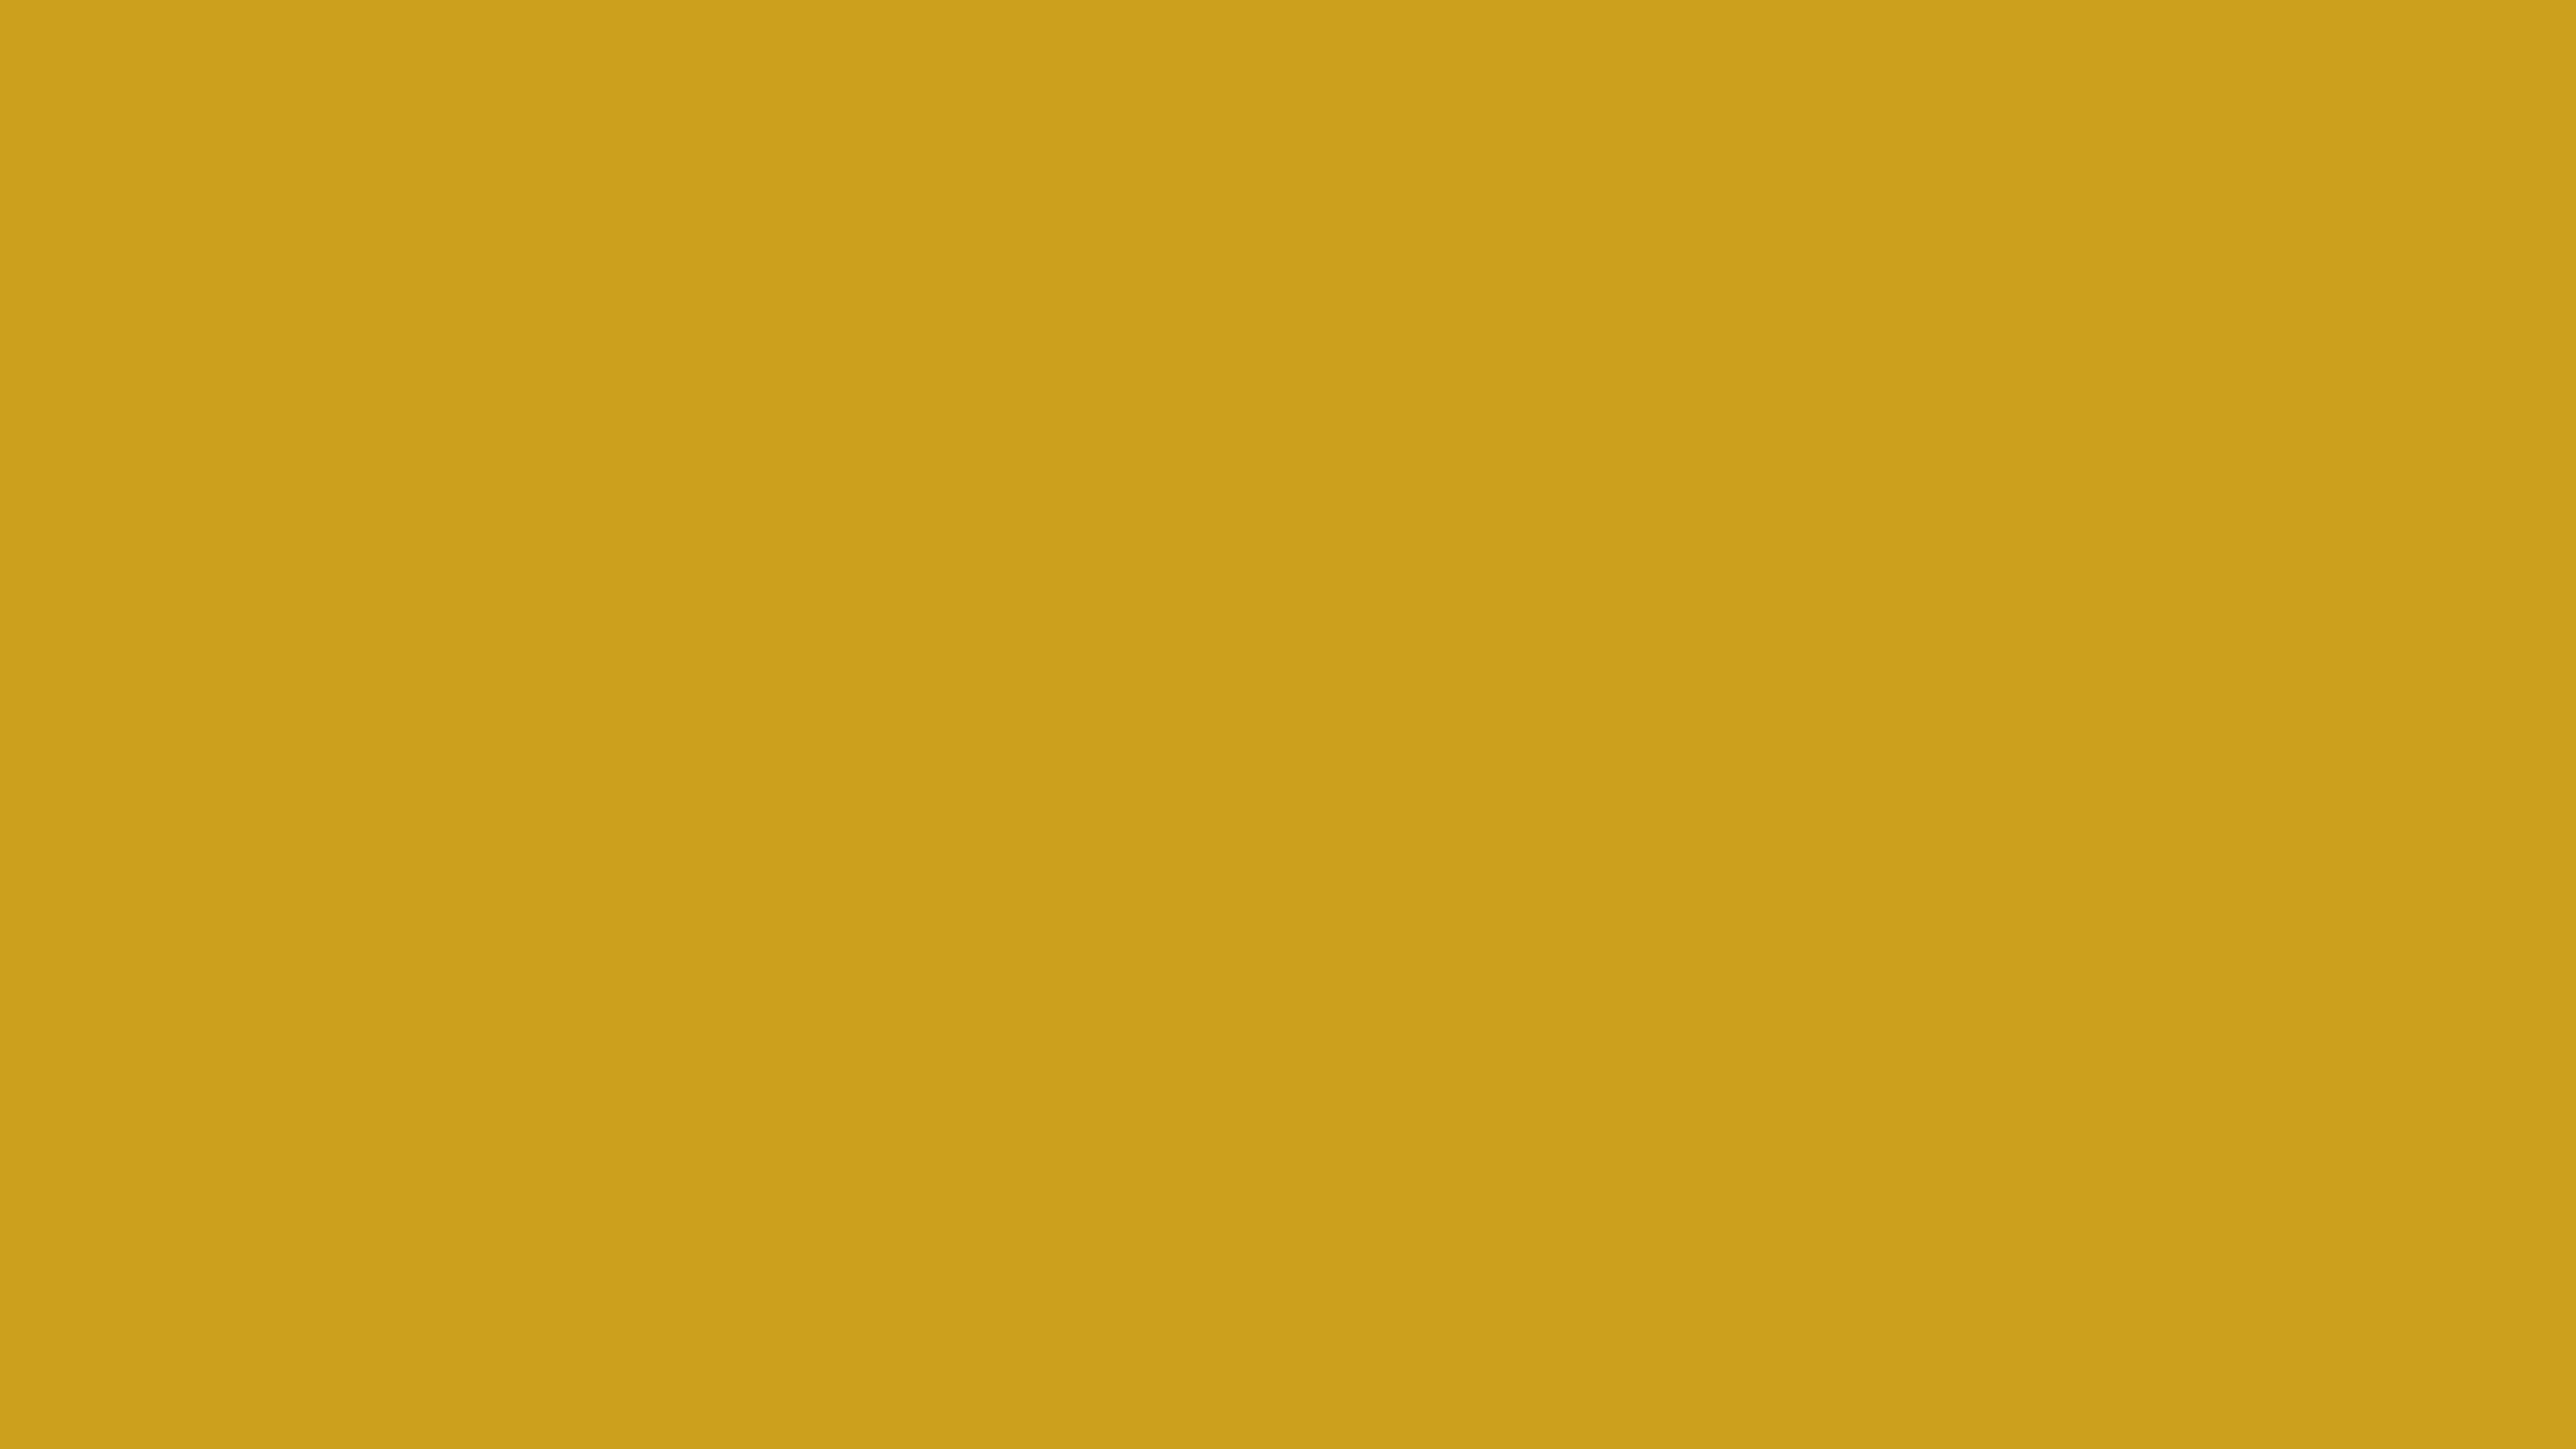 4096x2304 Lemon Curry Solid Color Background